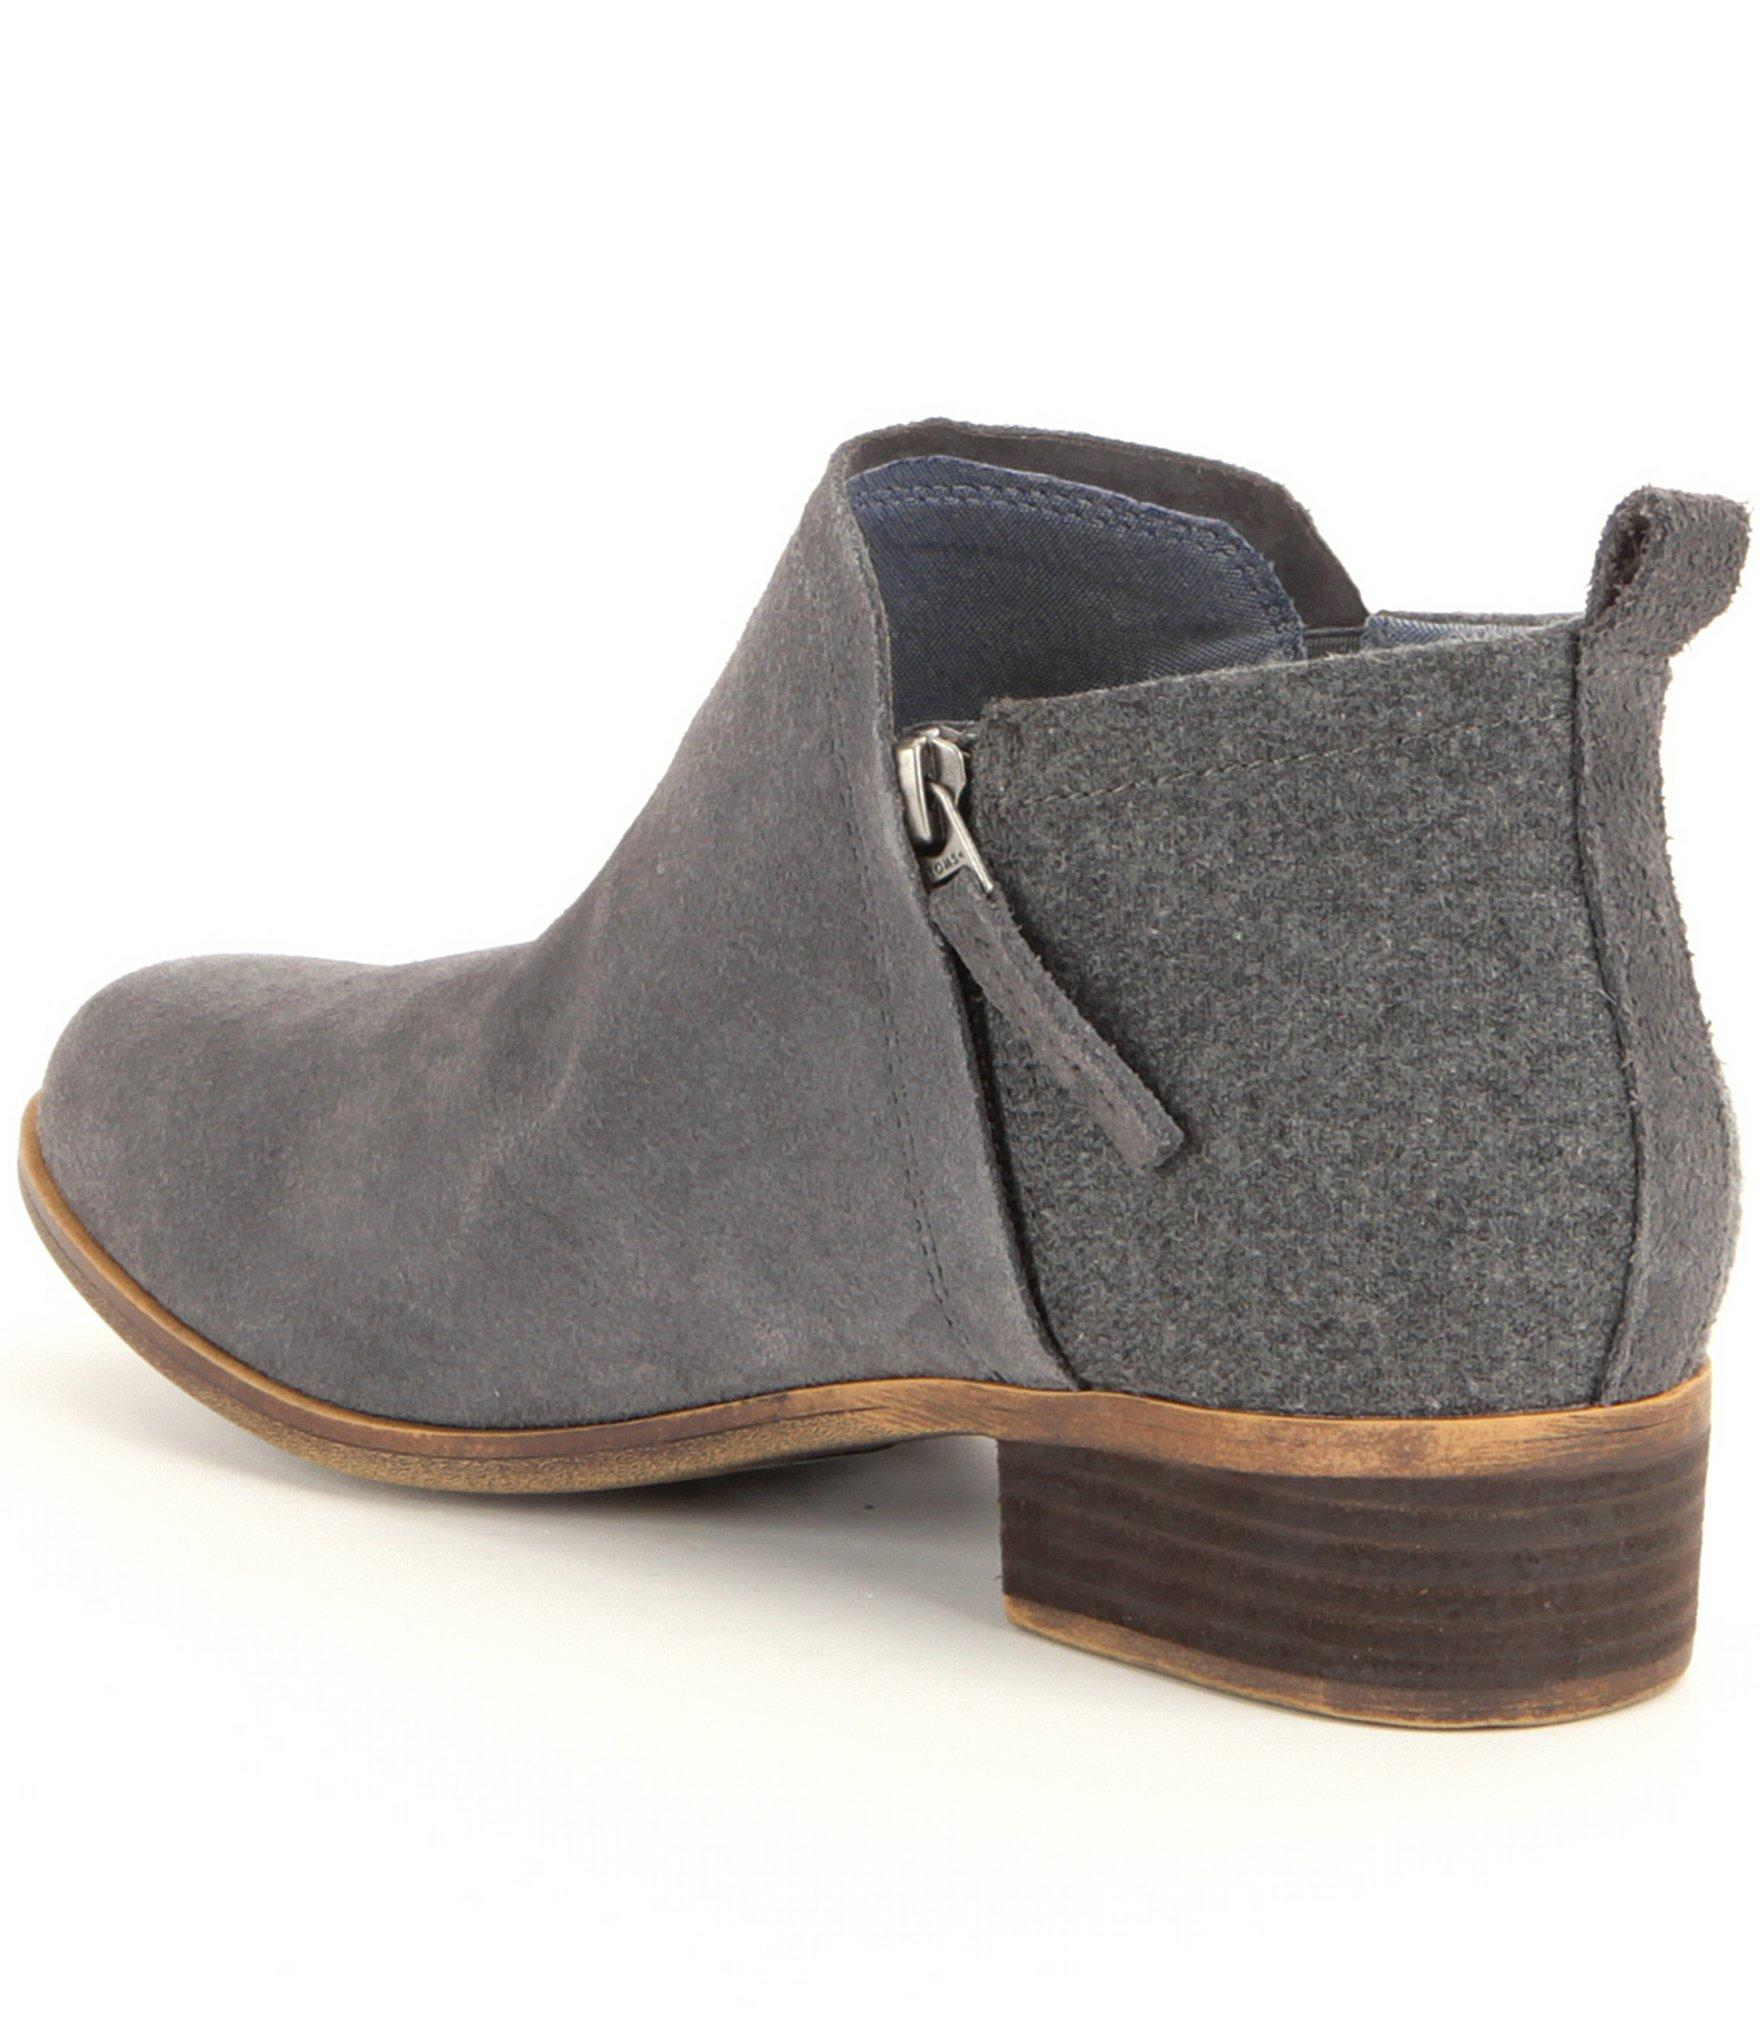 2e20ca5f3c7 Lyst - TOMS Deia Suede And Wool Booties in Gray